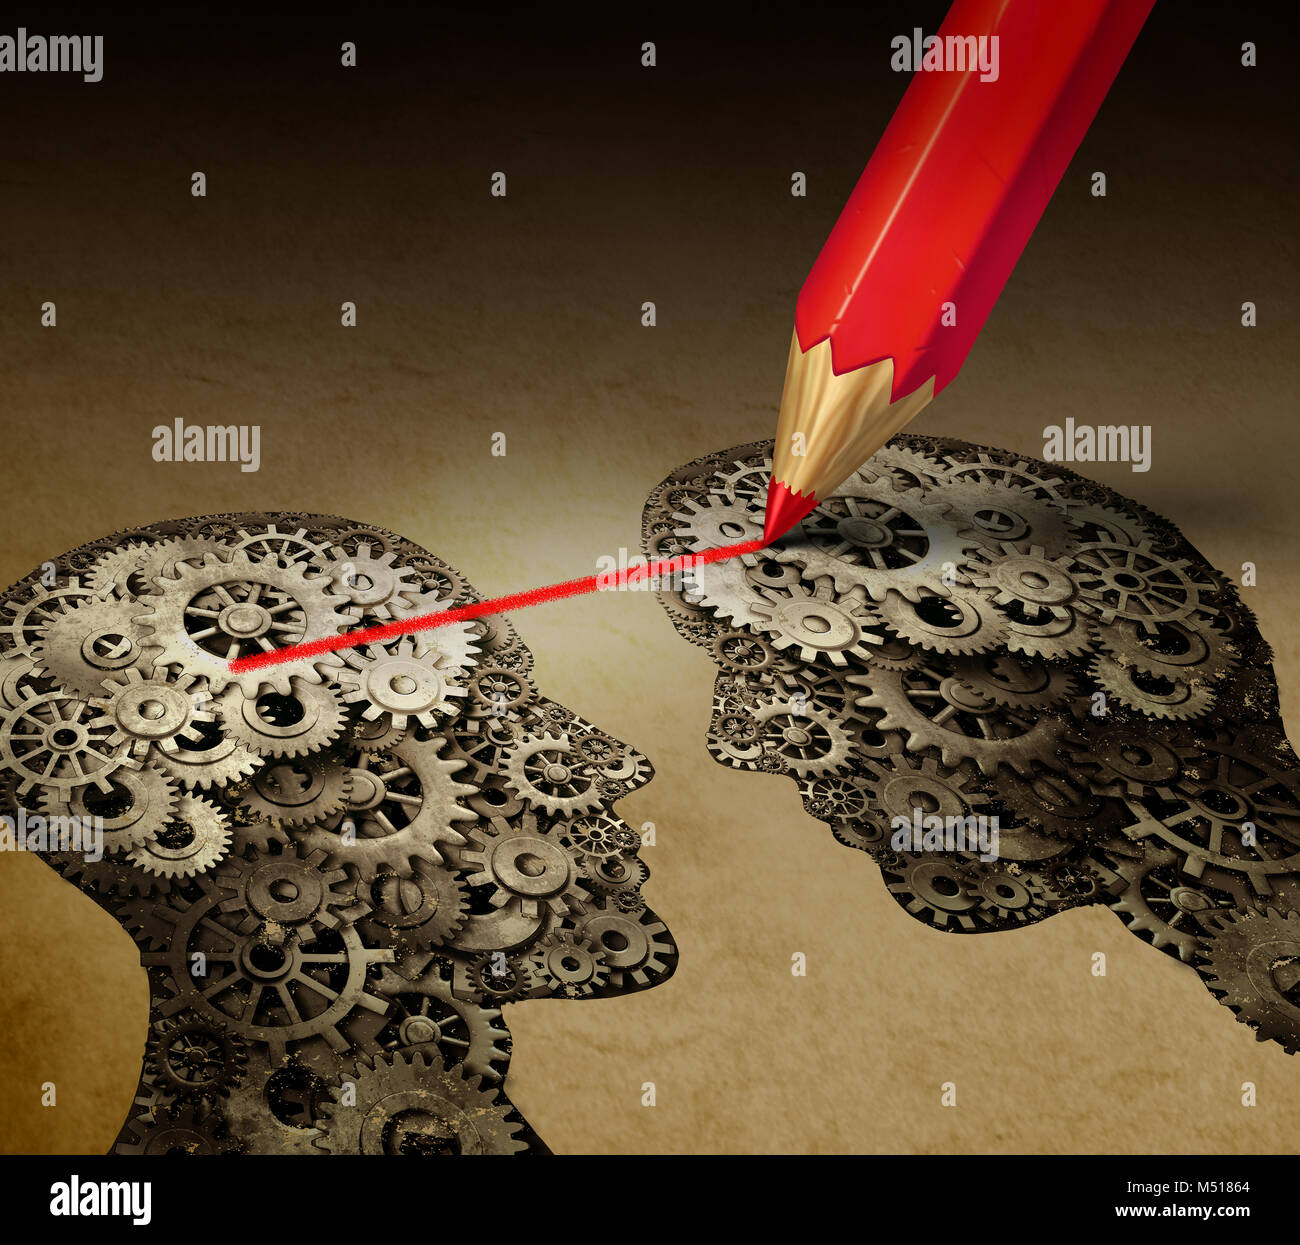 Brain telepathy and mind reading psychology or mental connection concept as telepathic people symbols connected - Stock Image